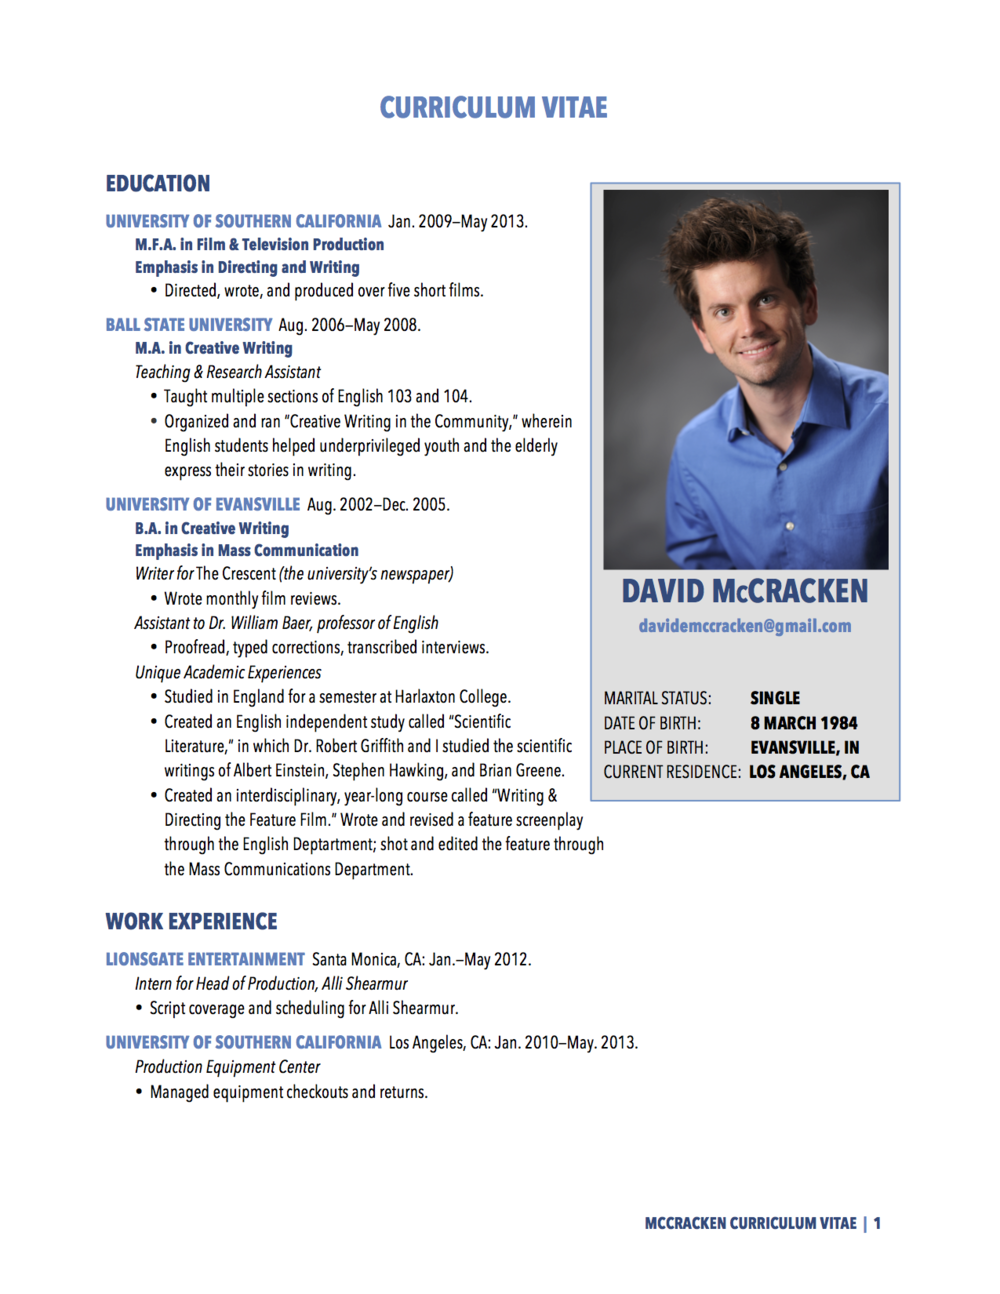 Curriculum vitae mr pictures download curriculum vitae pdf davidmccrackencv01032014for websitepg1g altavistaventures Images